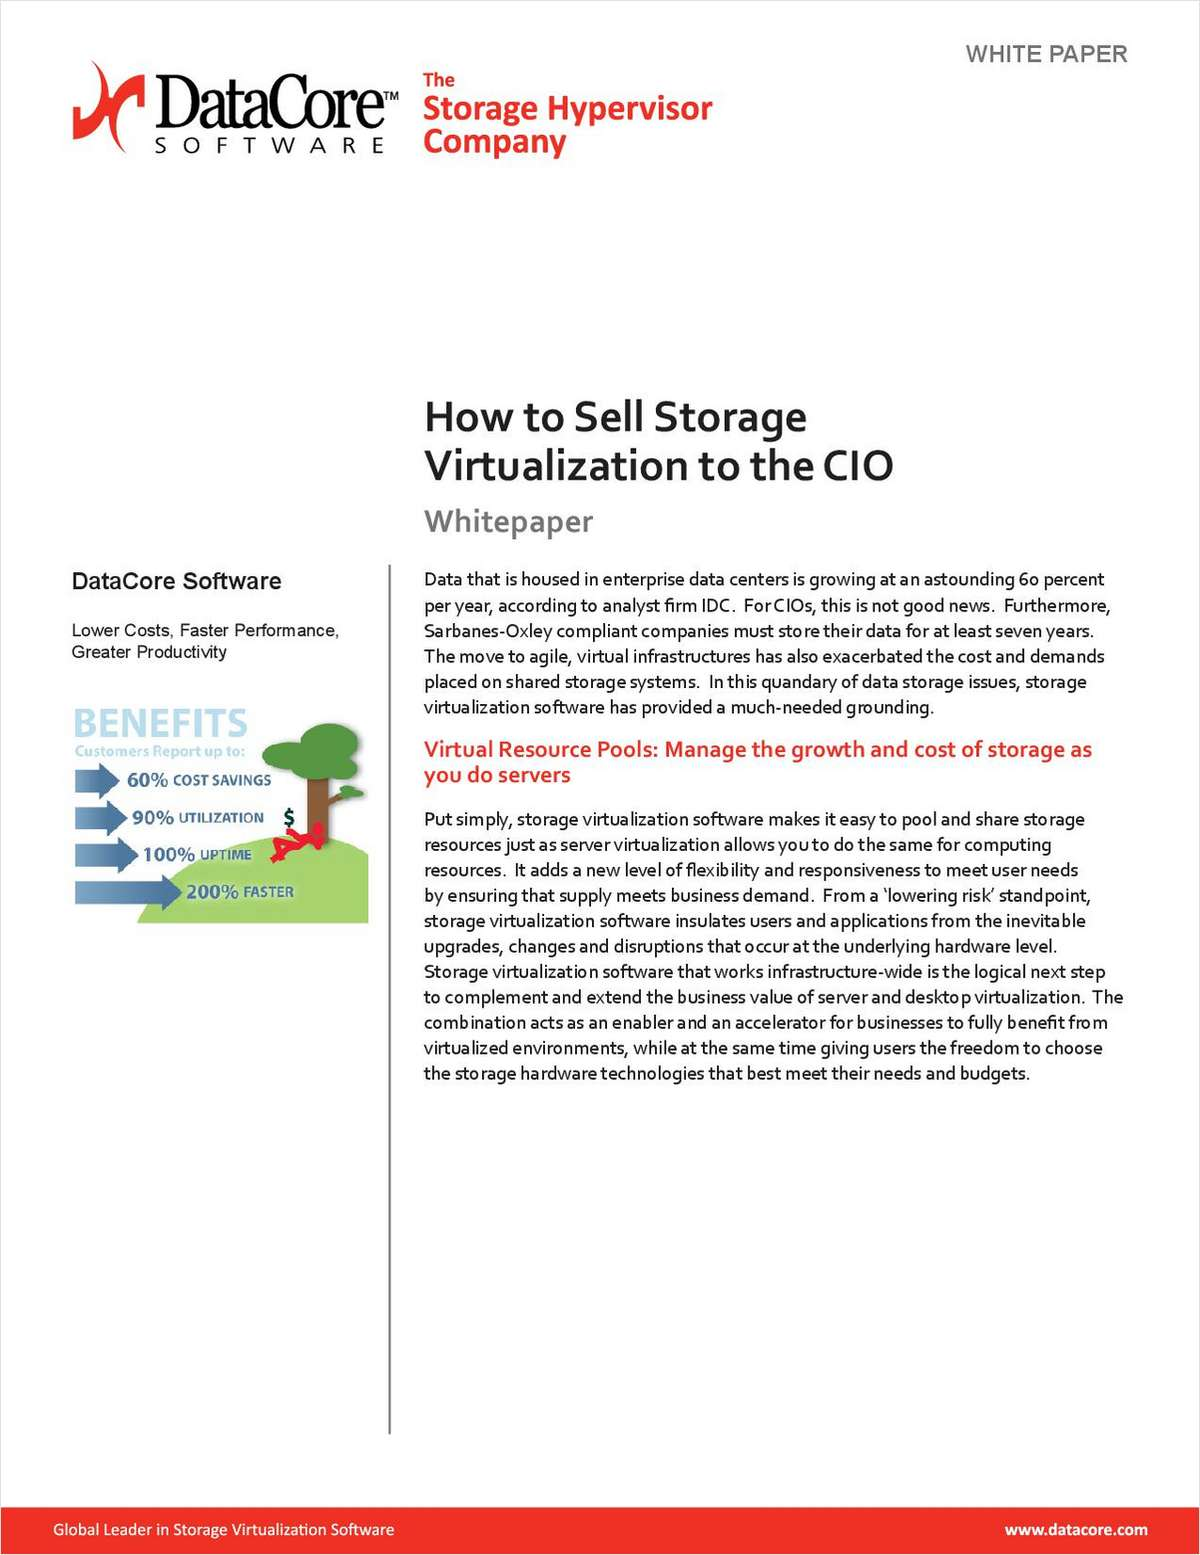 How to Sell Storage Virtualization to Your CIO